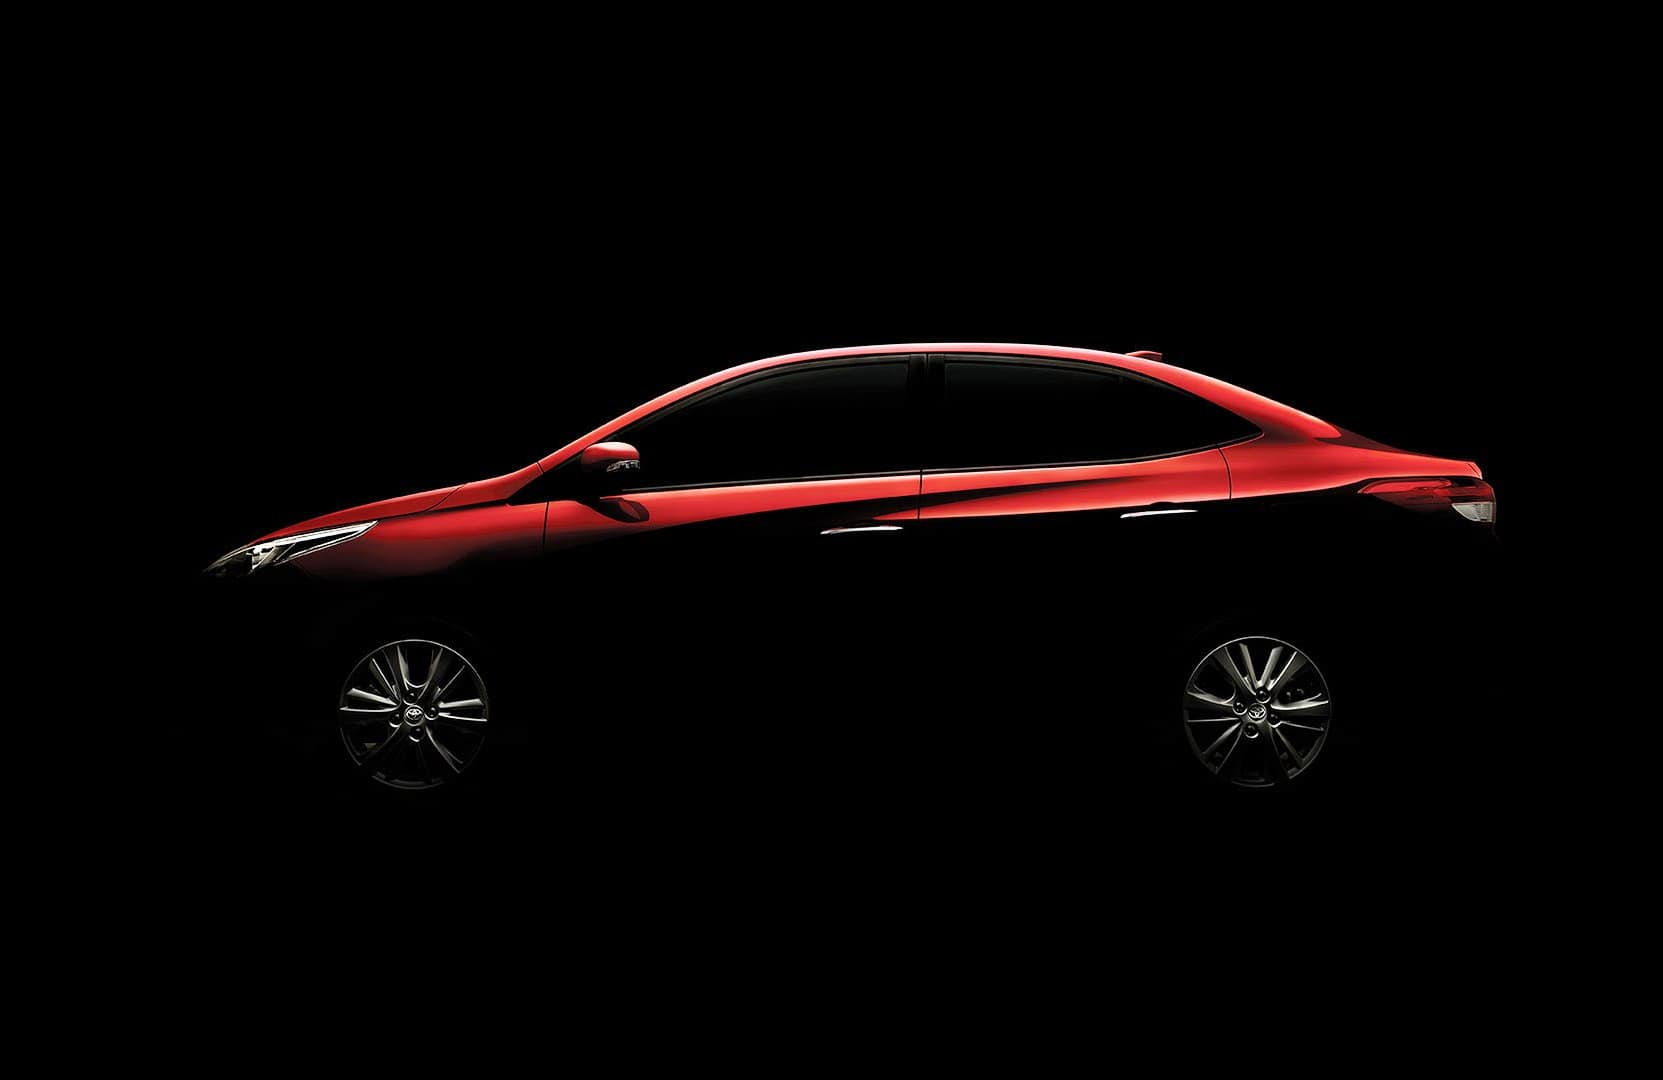 Auto Expo 2018: Toyota Yaris Ativ (Toyota Vios) Teased; India Launch Date, Expected Price, Images, Specs, Interior, Features